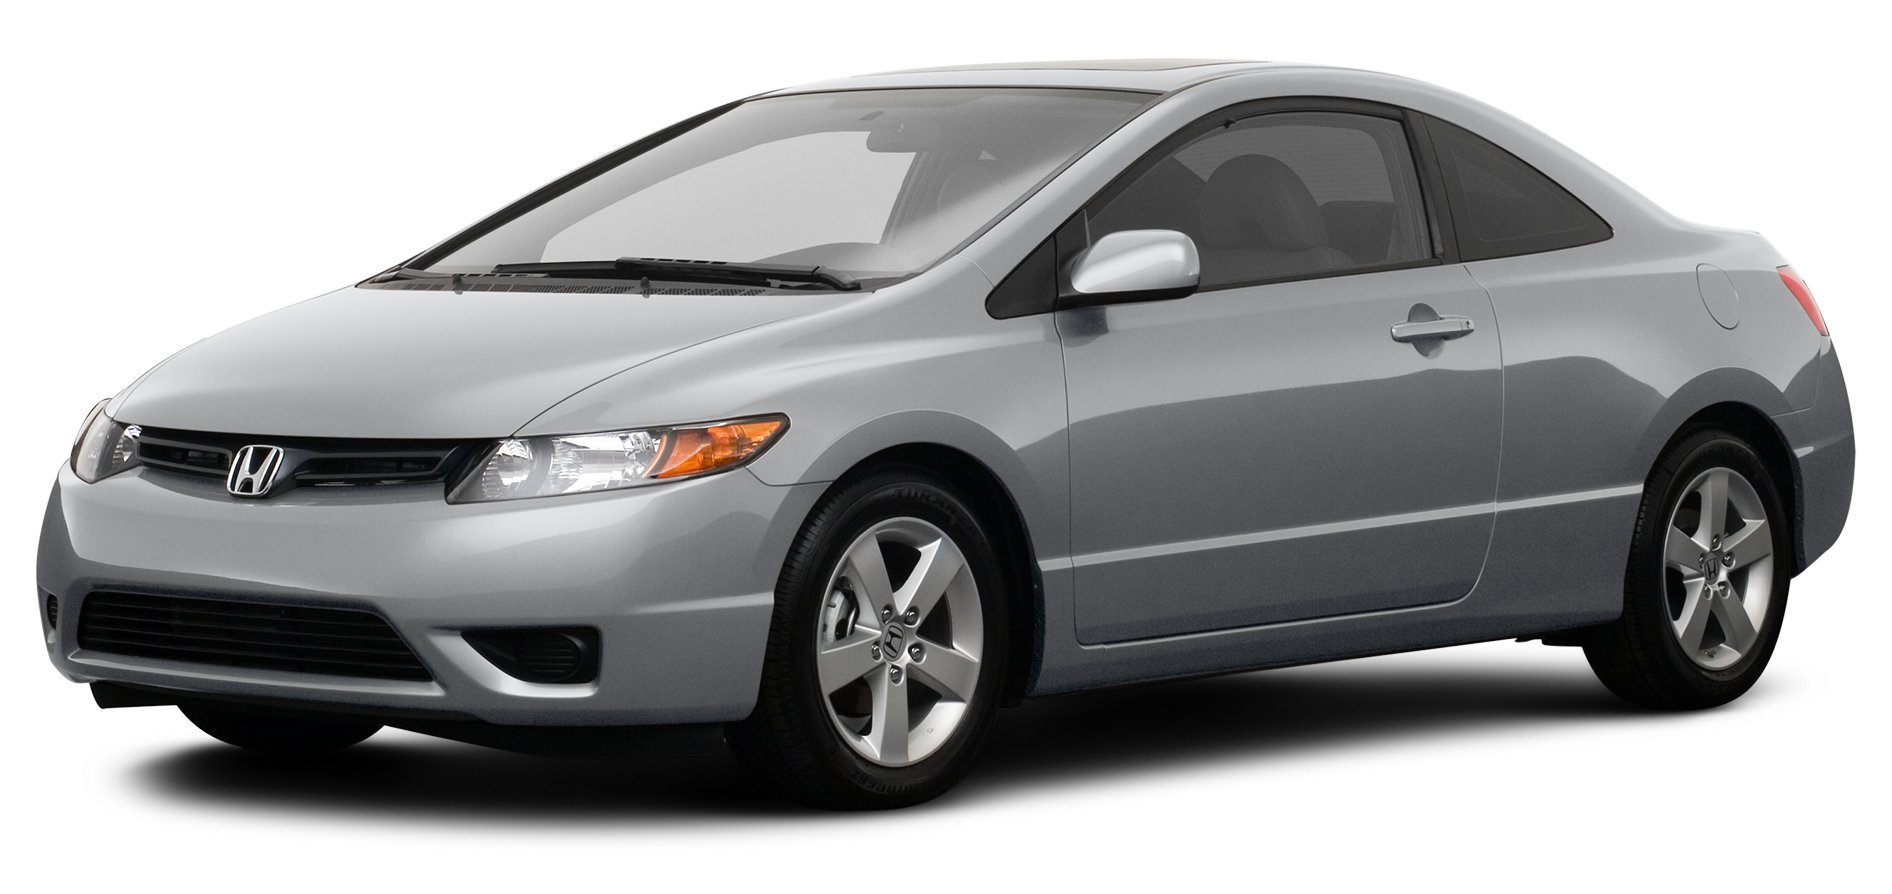 2008 honda accord reviews images and specs for 2008 honda accord weight